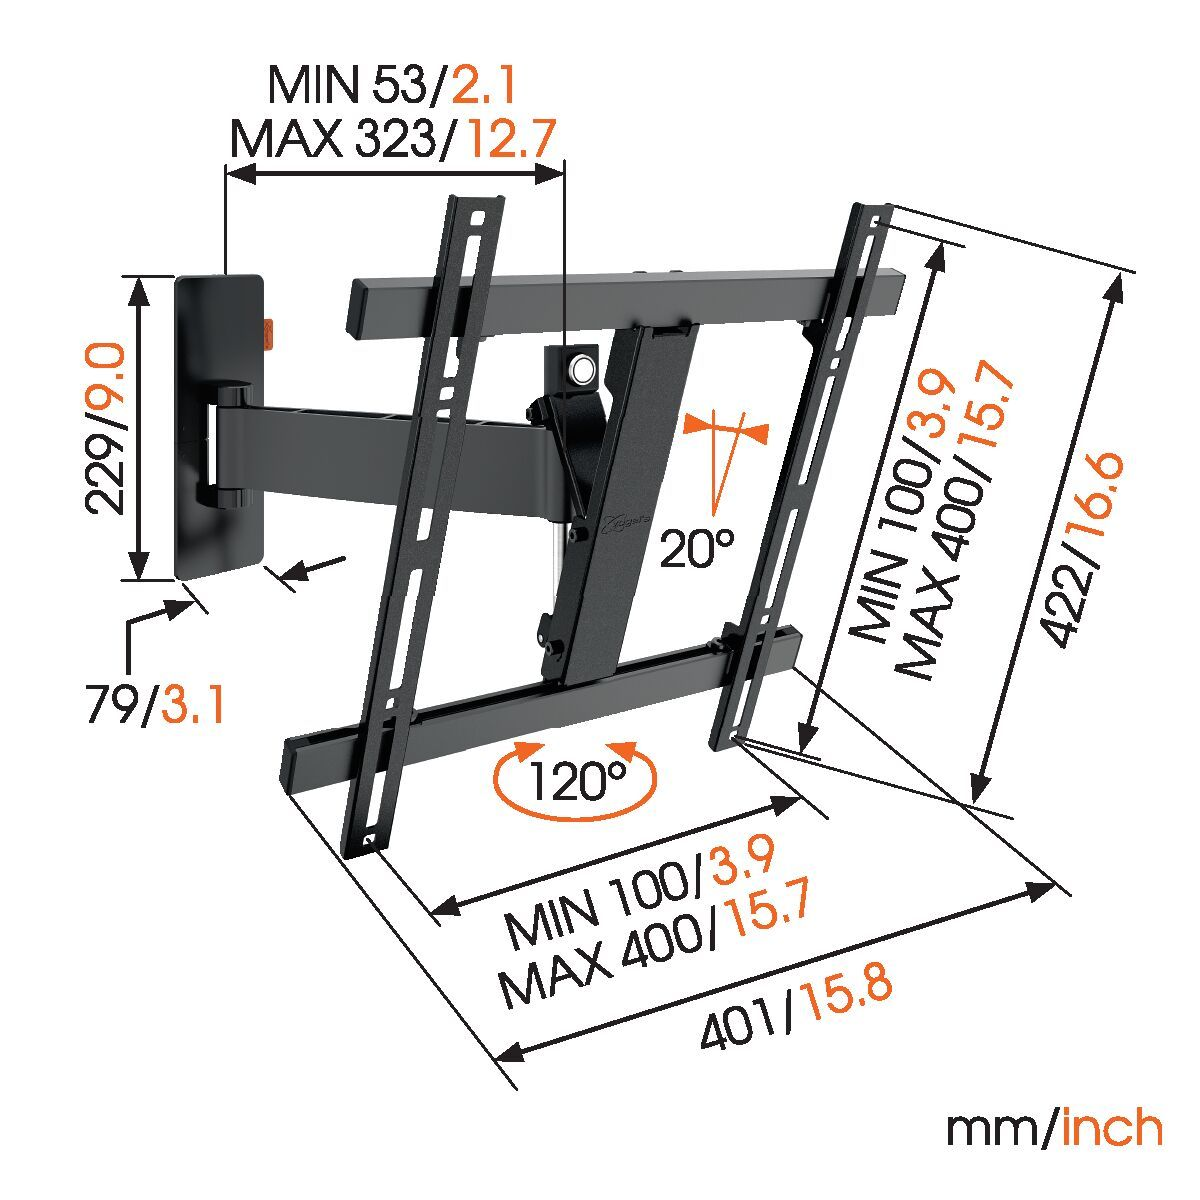 Vogel's WALL 3225 Full-Motion TV Wall Mount - Suitable for 32 up to 55 inch TVs - Motion (up to 120°) - Tilt up to 20° - Dimensions